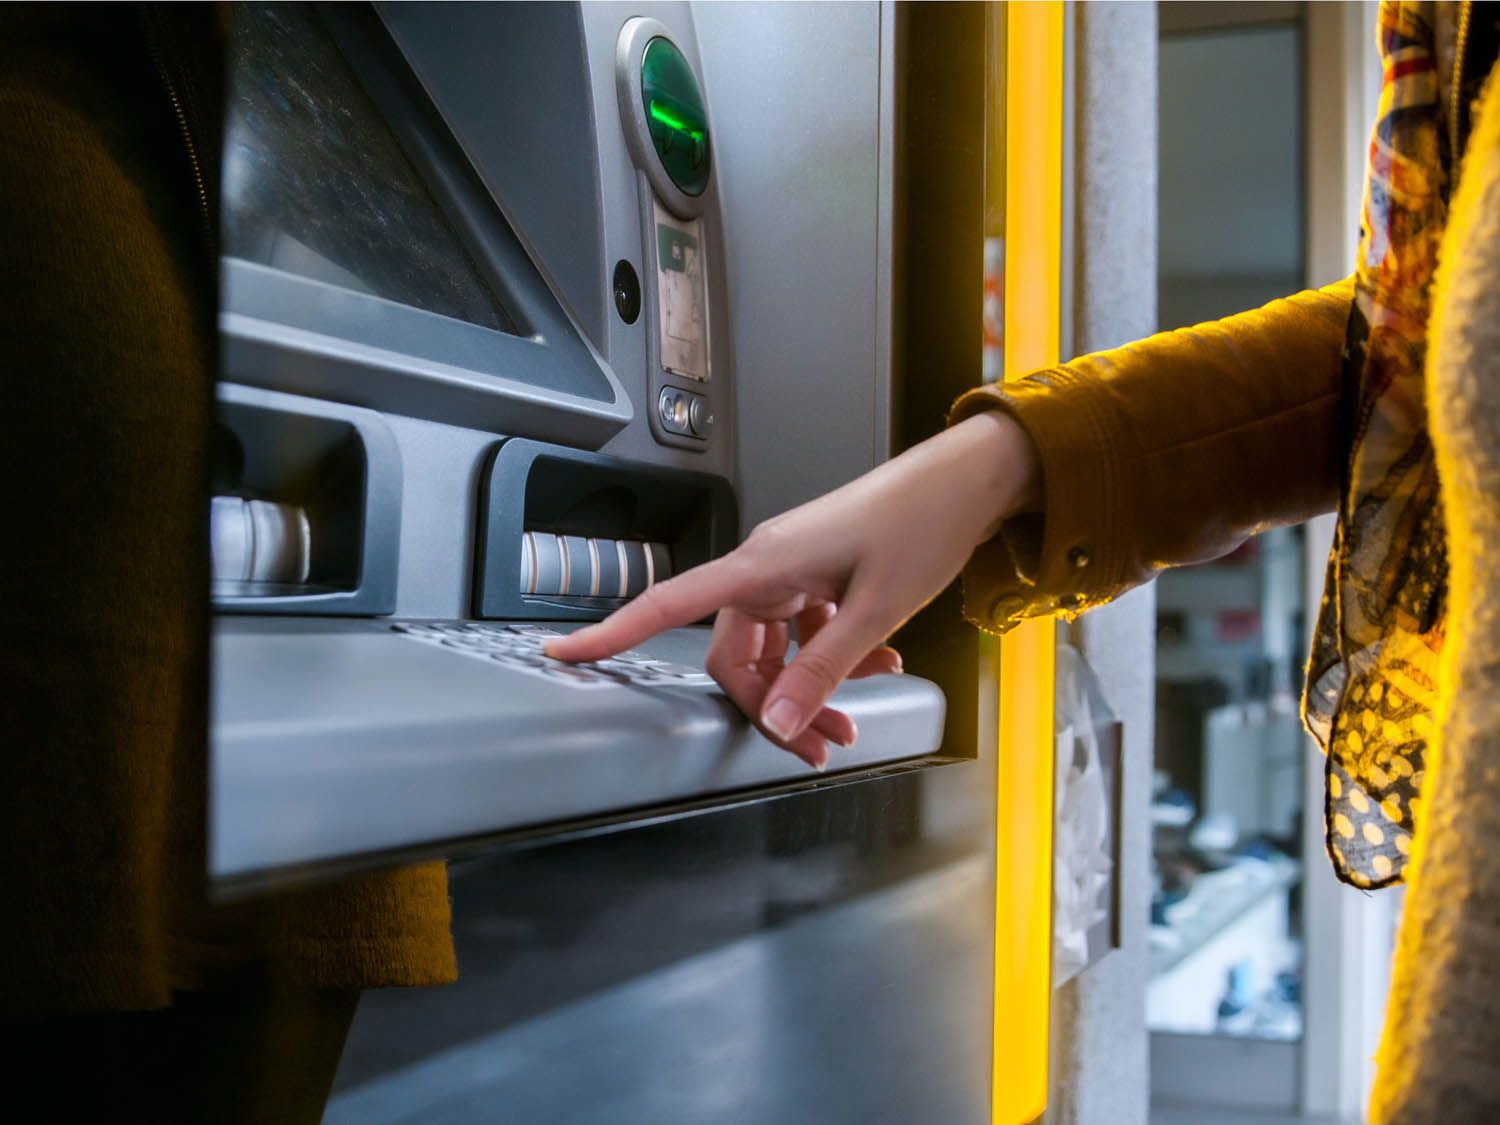 ATMs have plenty of features you may not be aware of! Learn how they can make your life even more convenient.